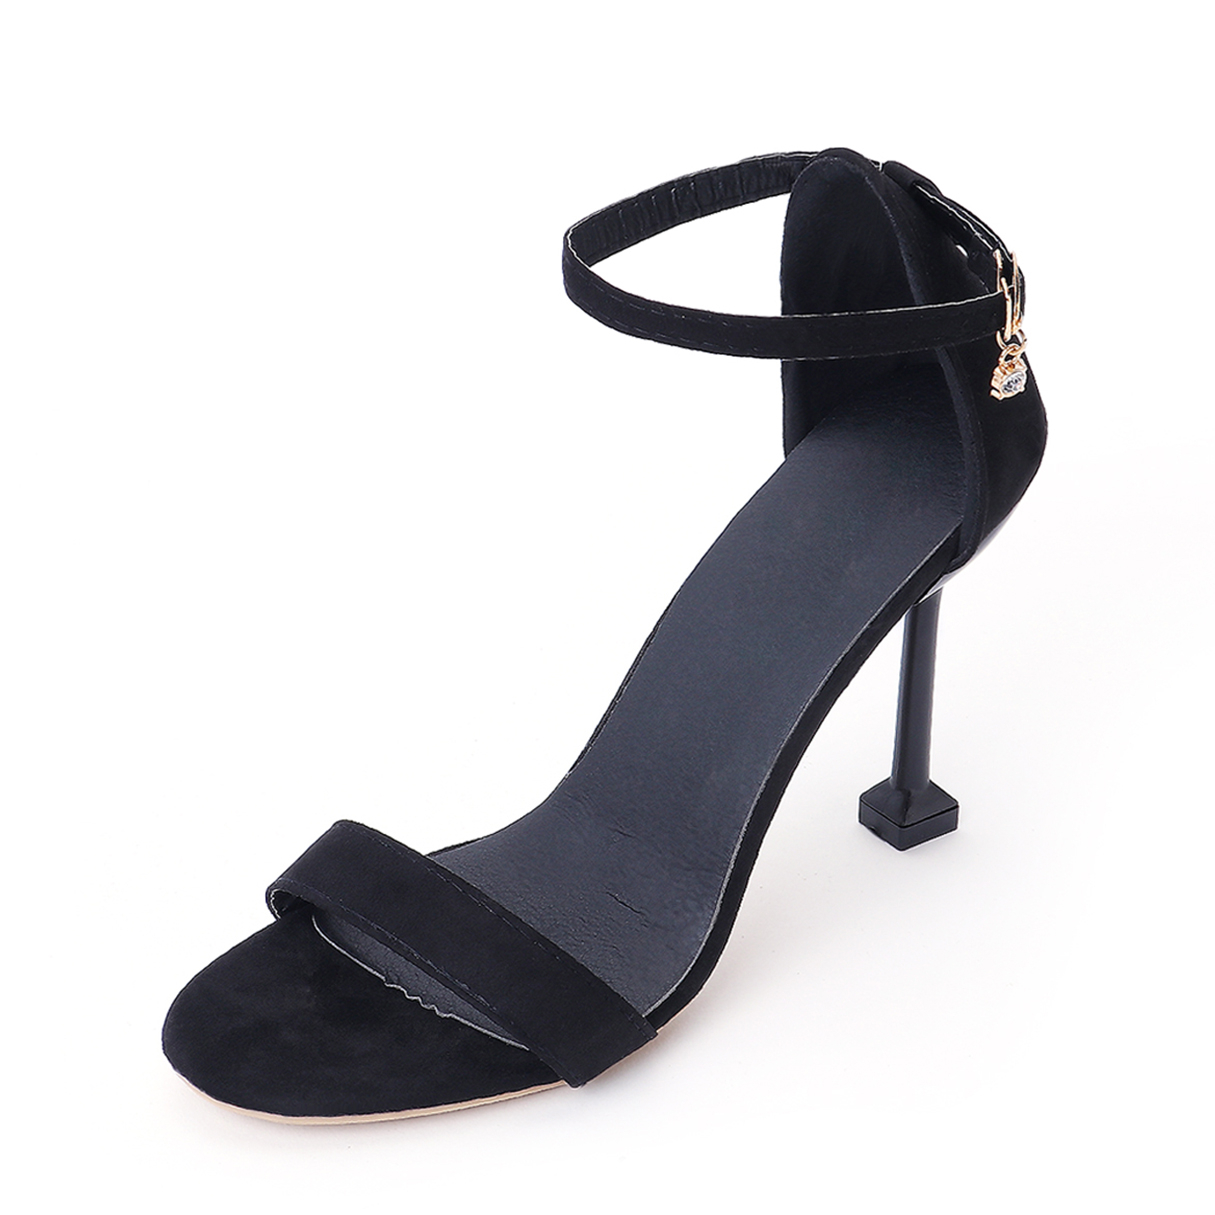 Black Frosted Leather Ankle Strap Heeled Sandals llxf summer sandals plus 34 41 42 43 crossdresser sexy 19 20cm transparent high heeled shoes woman stiletto ankle strap pumps